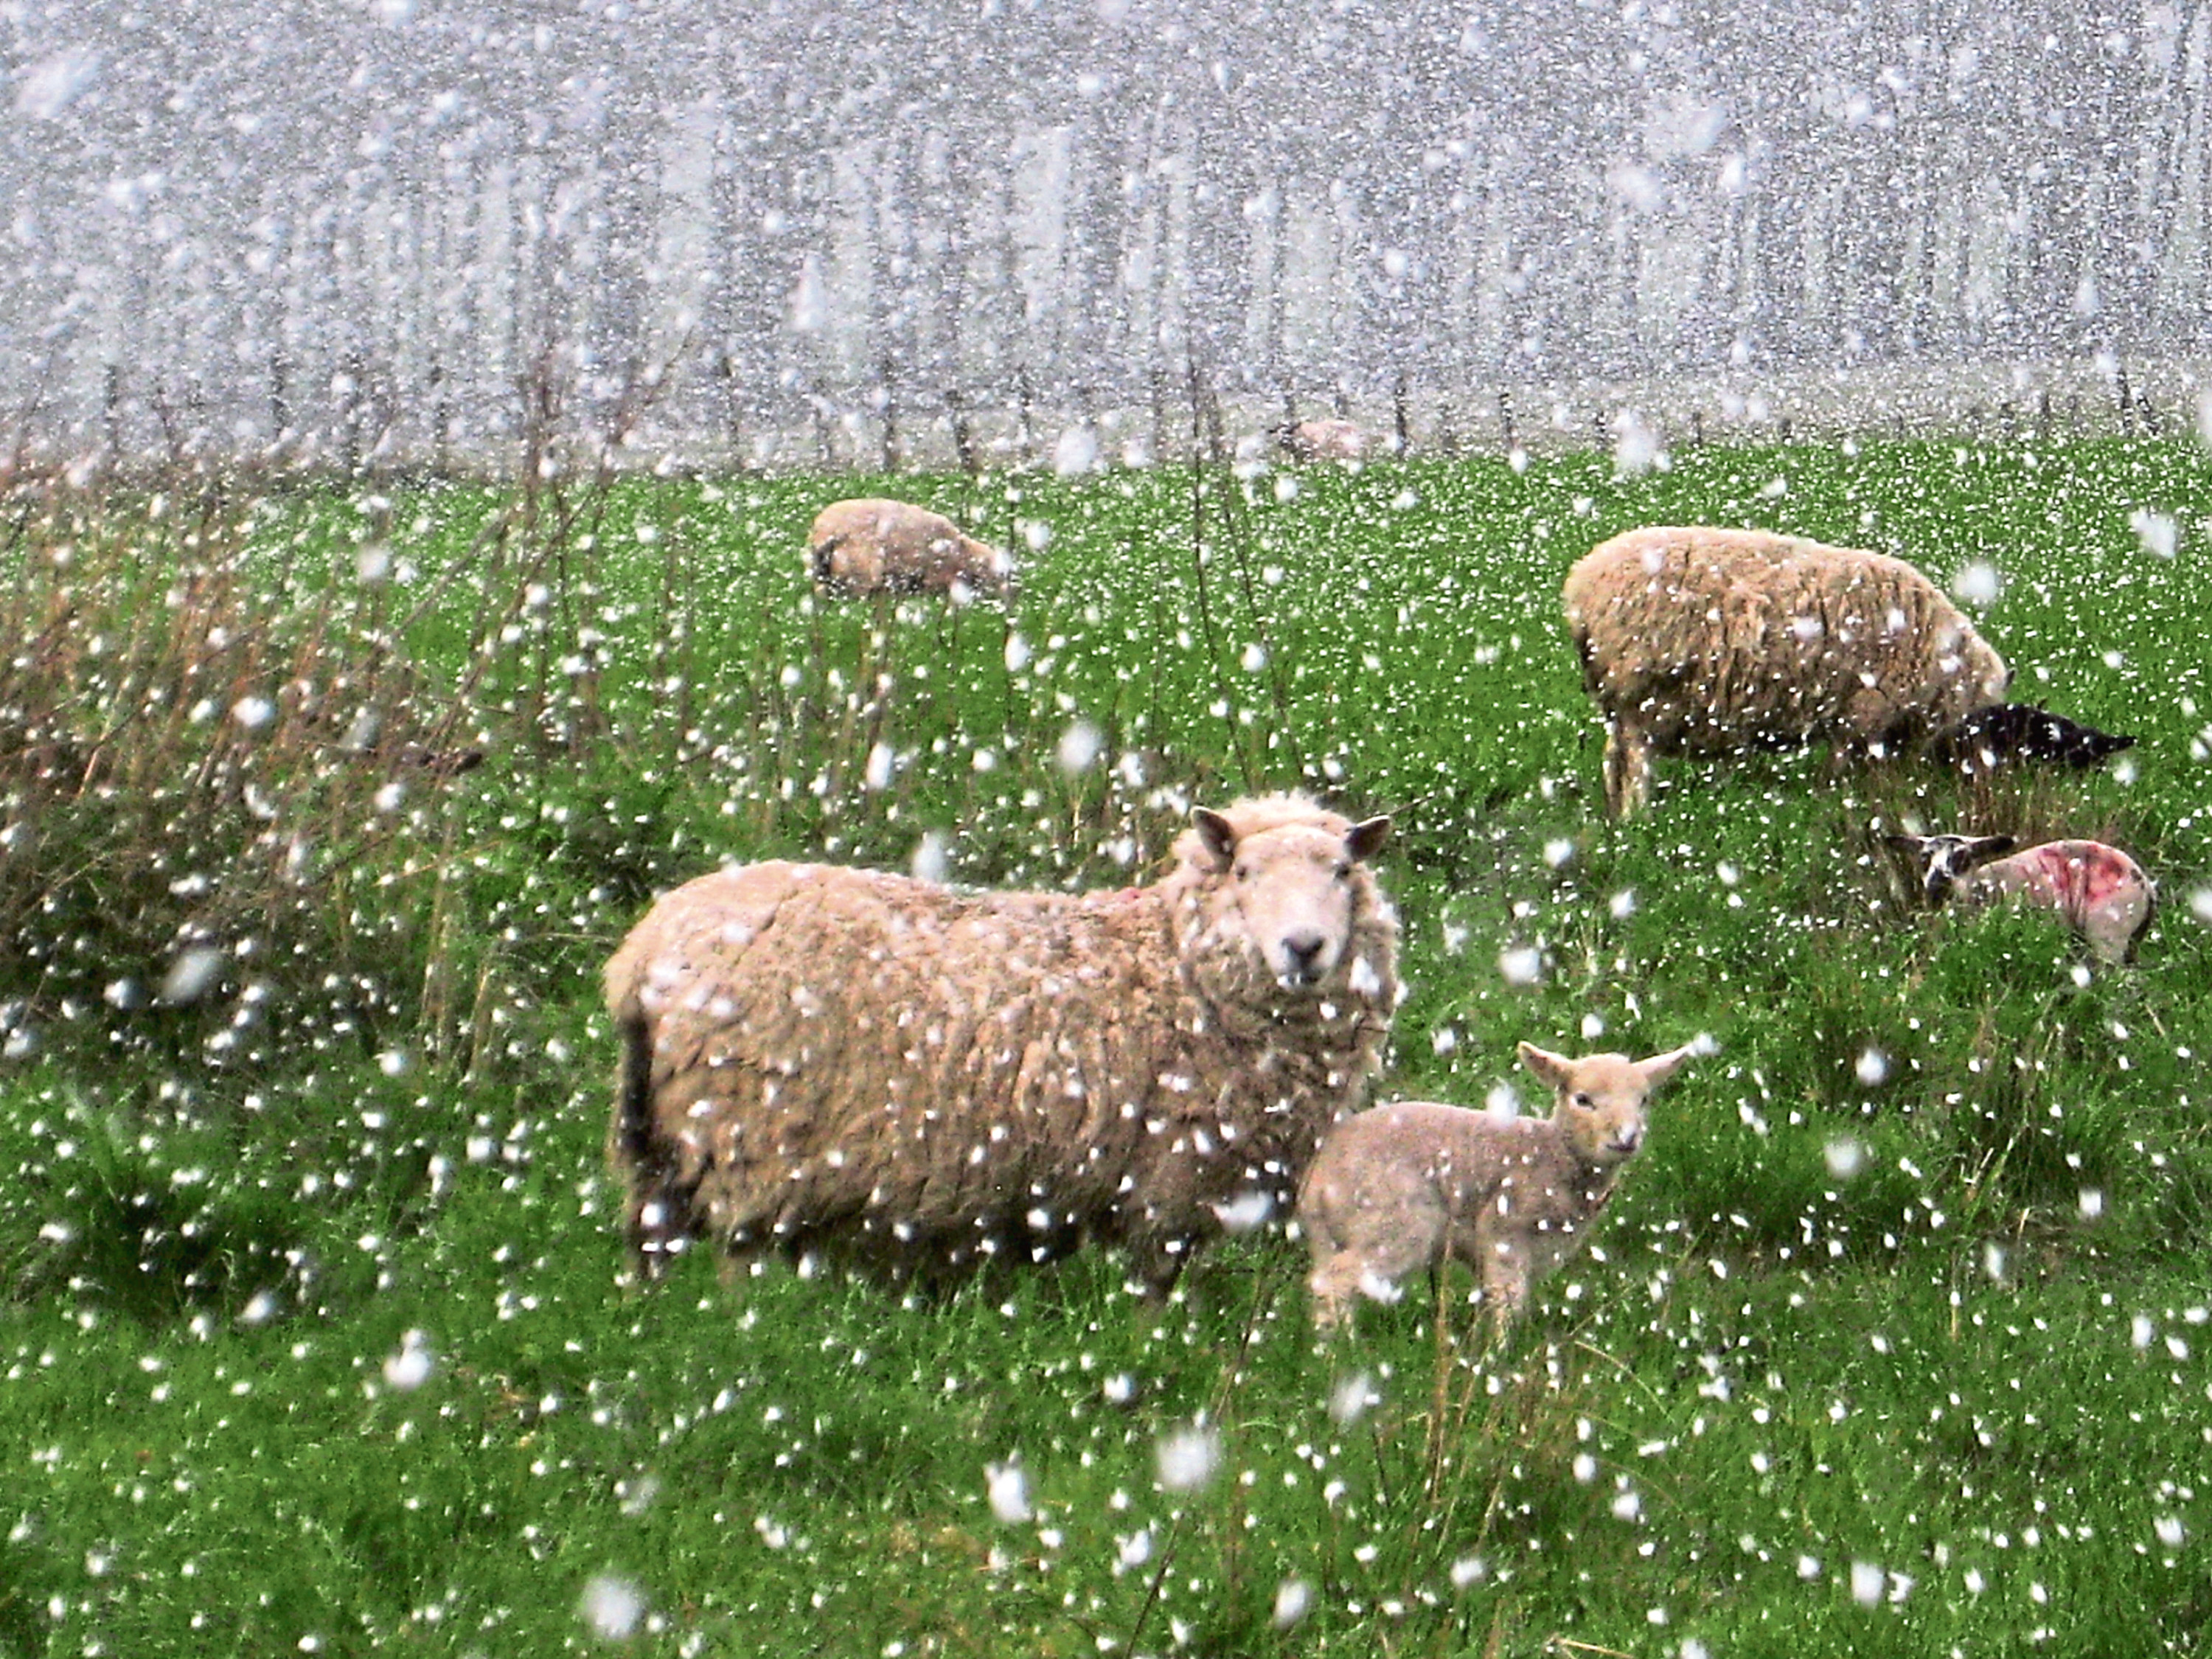 Sheep were caught in snow at Tarland